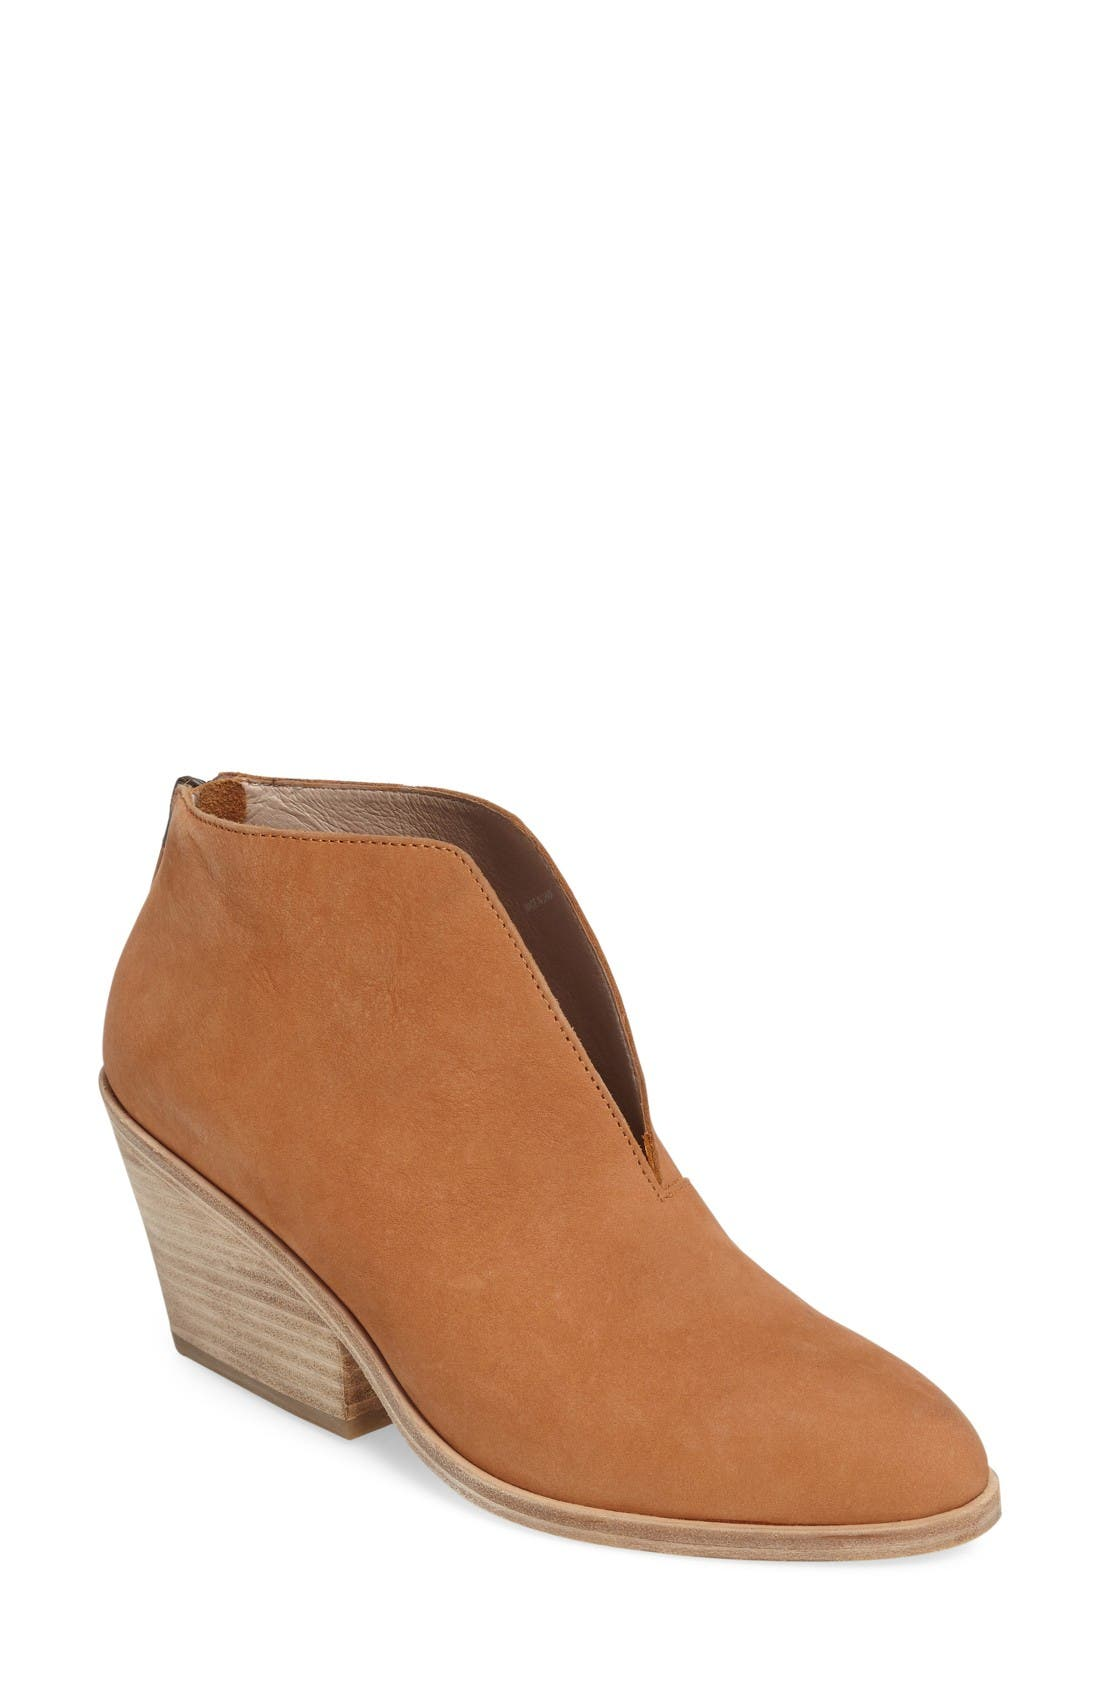 Main Image - Eileen Fisher Nelson Split Shaft Block Heel Bootie (Women)